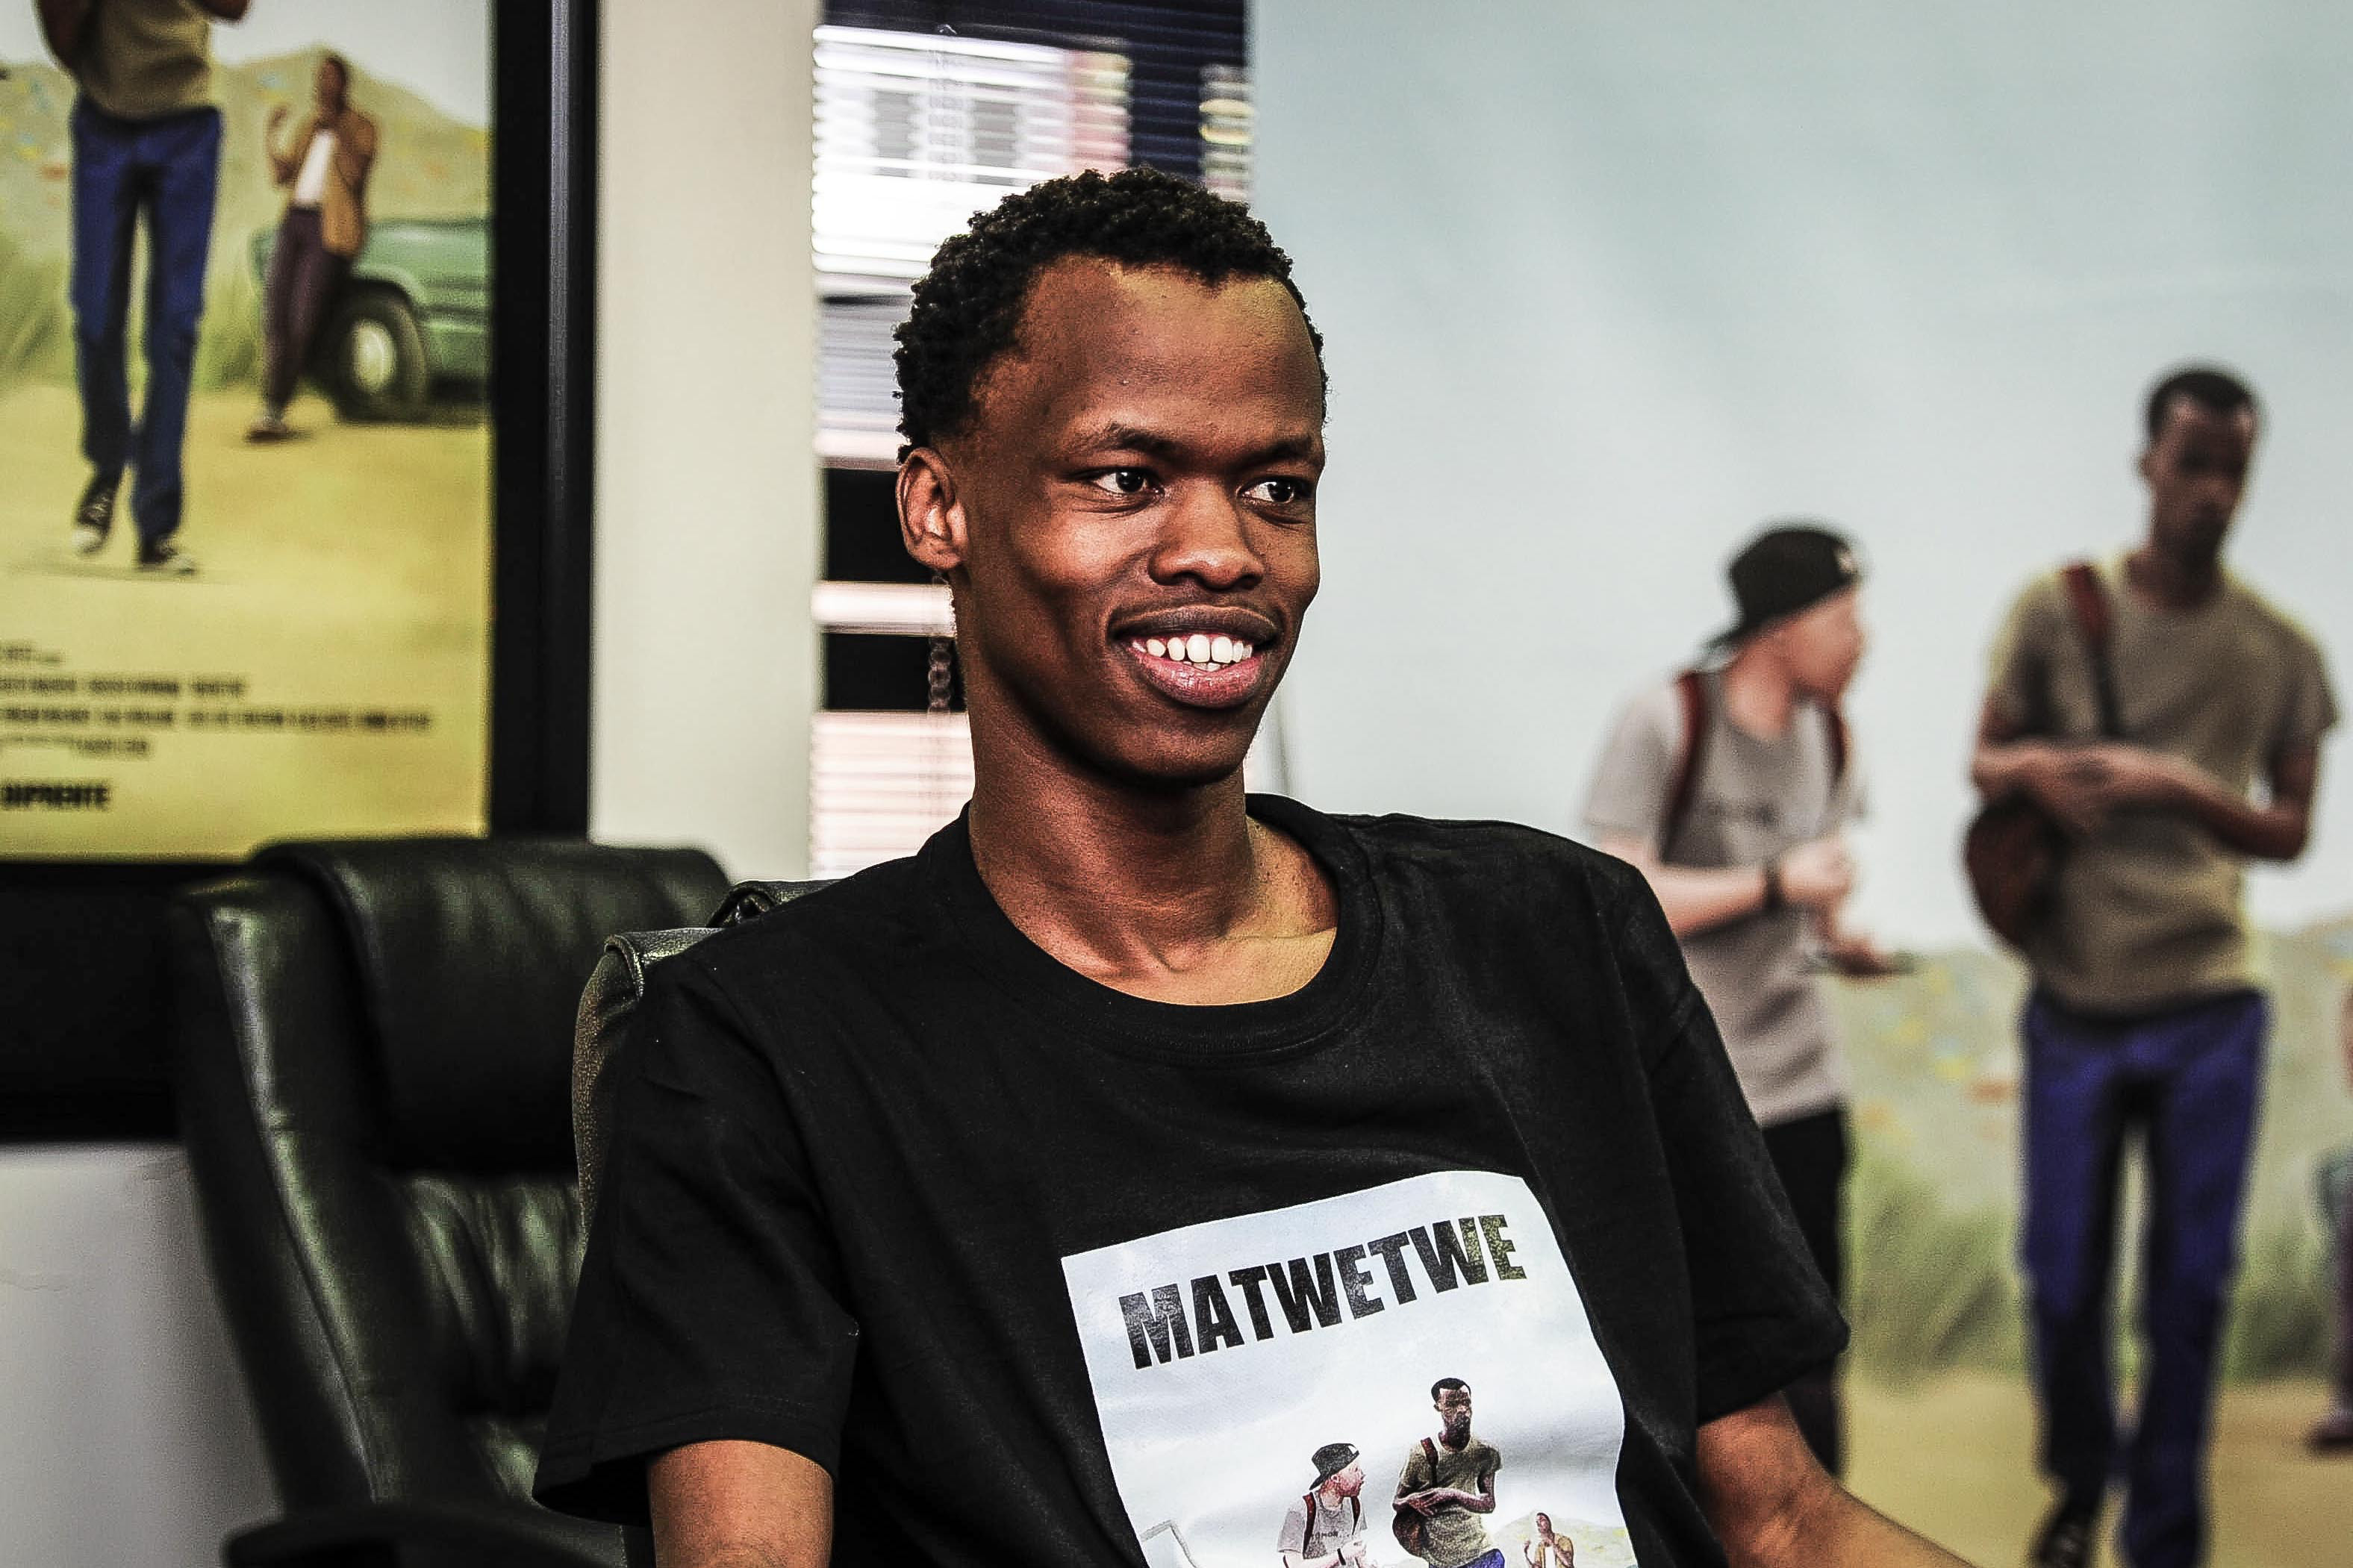 18 January 2019: Sibusiso Khwinana during an interview in Sandton. He played Lefa, one of the lead characters in the comedy film 'Matwetwe'. (Photograph by Gallo Images/City Press/ Mpumelelo Buthelezi)